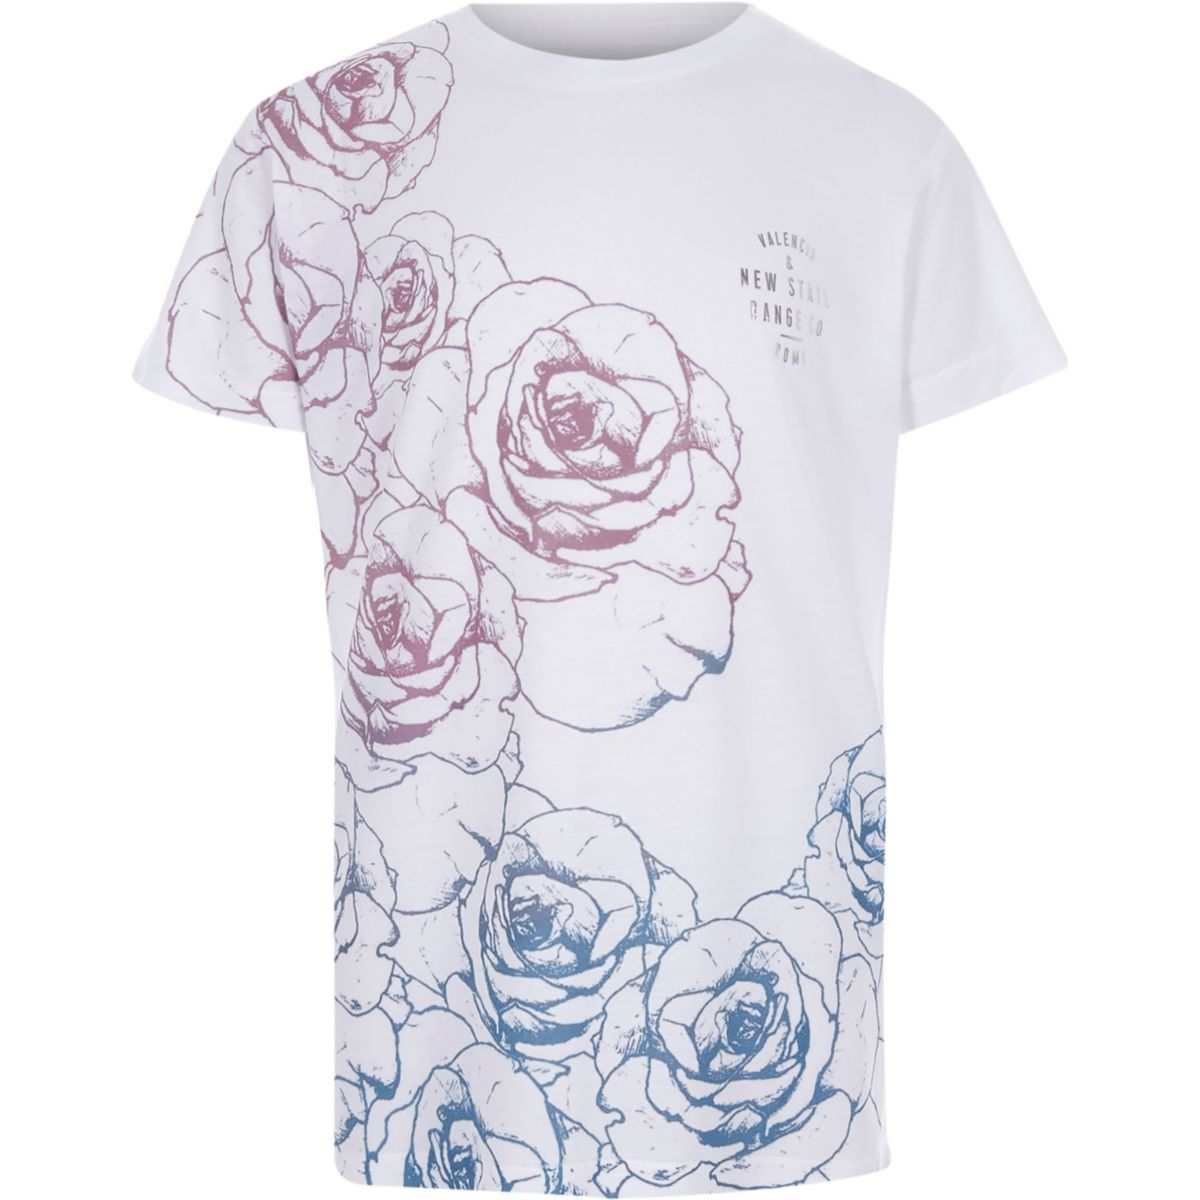 Boys pink and blue floral T-shirt